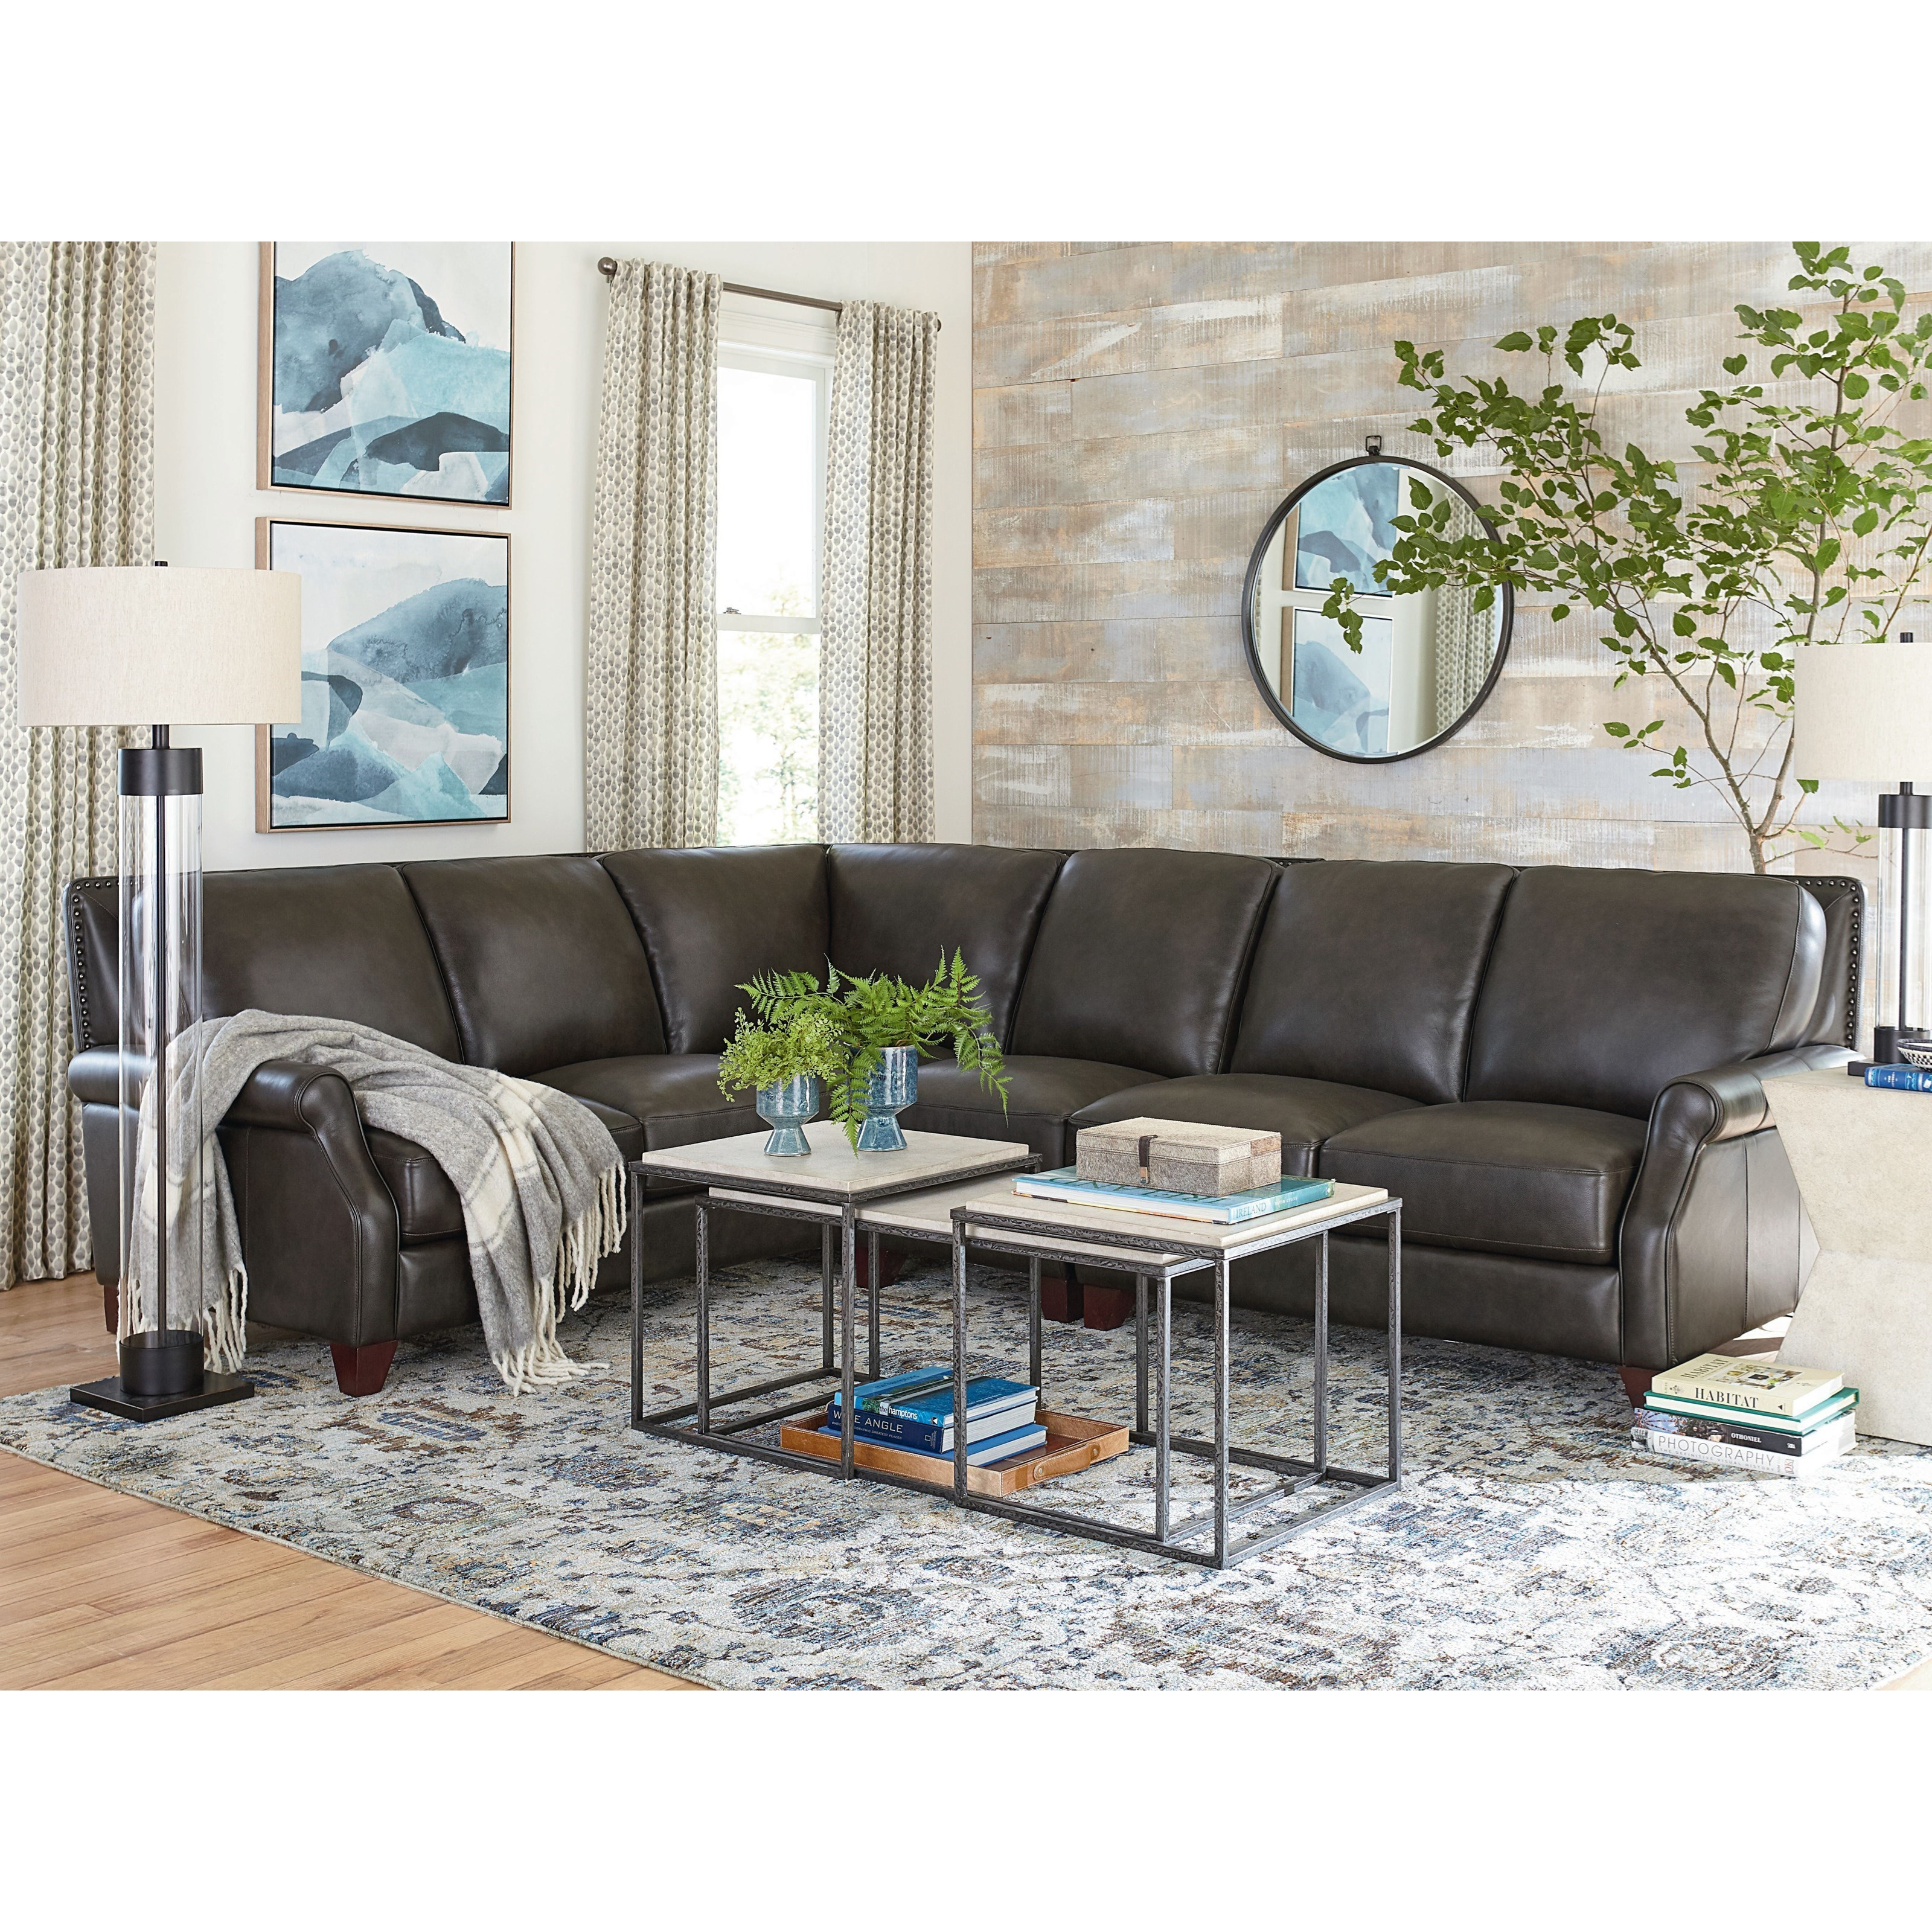 Greyson Sectional by Bassett at Bassett of Cool Springs